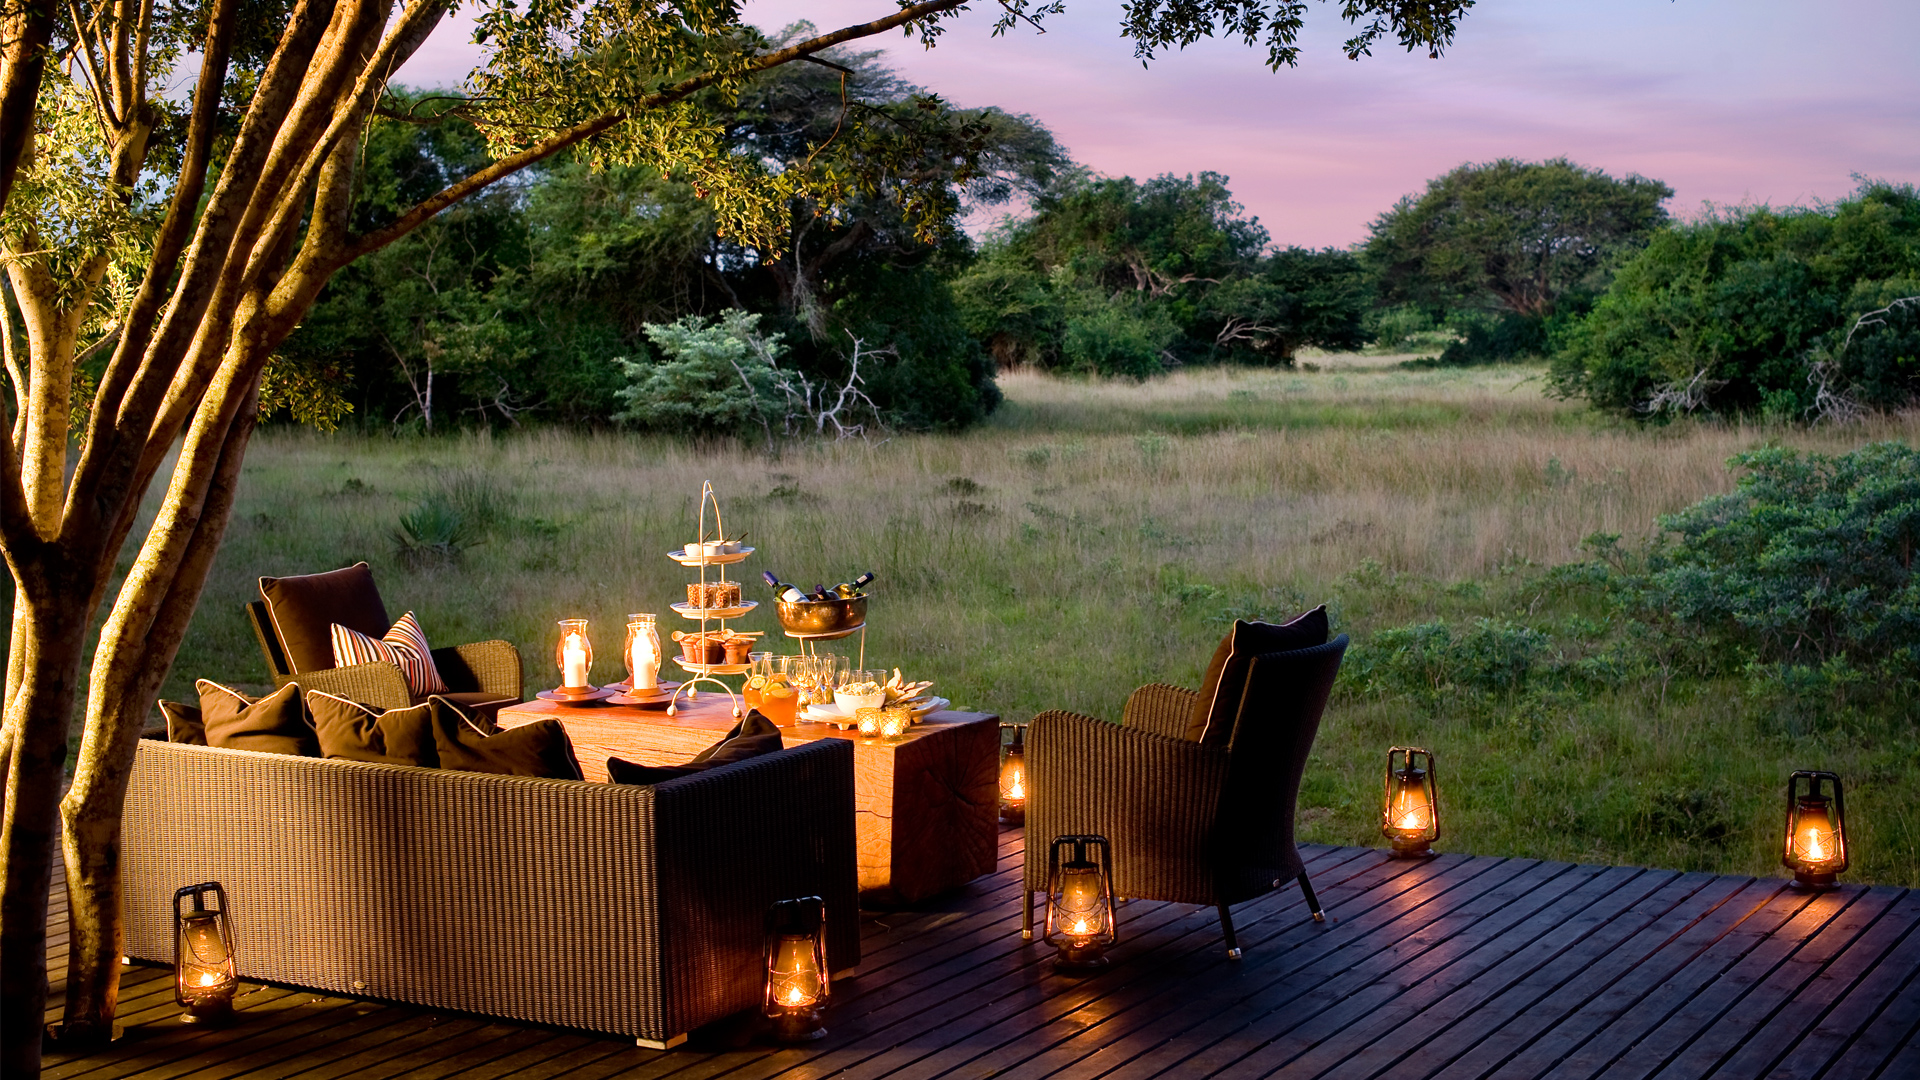 twilight, outdoor table and chairs, candles